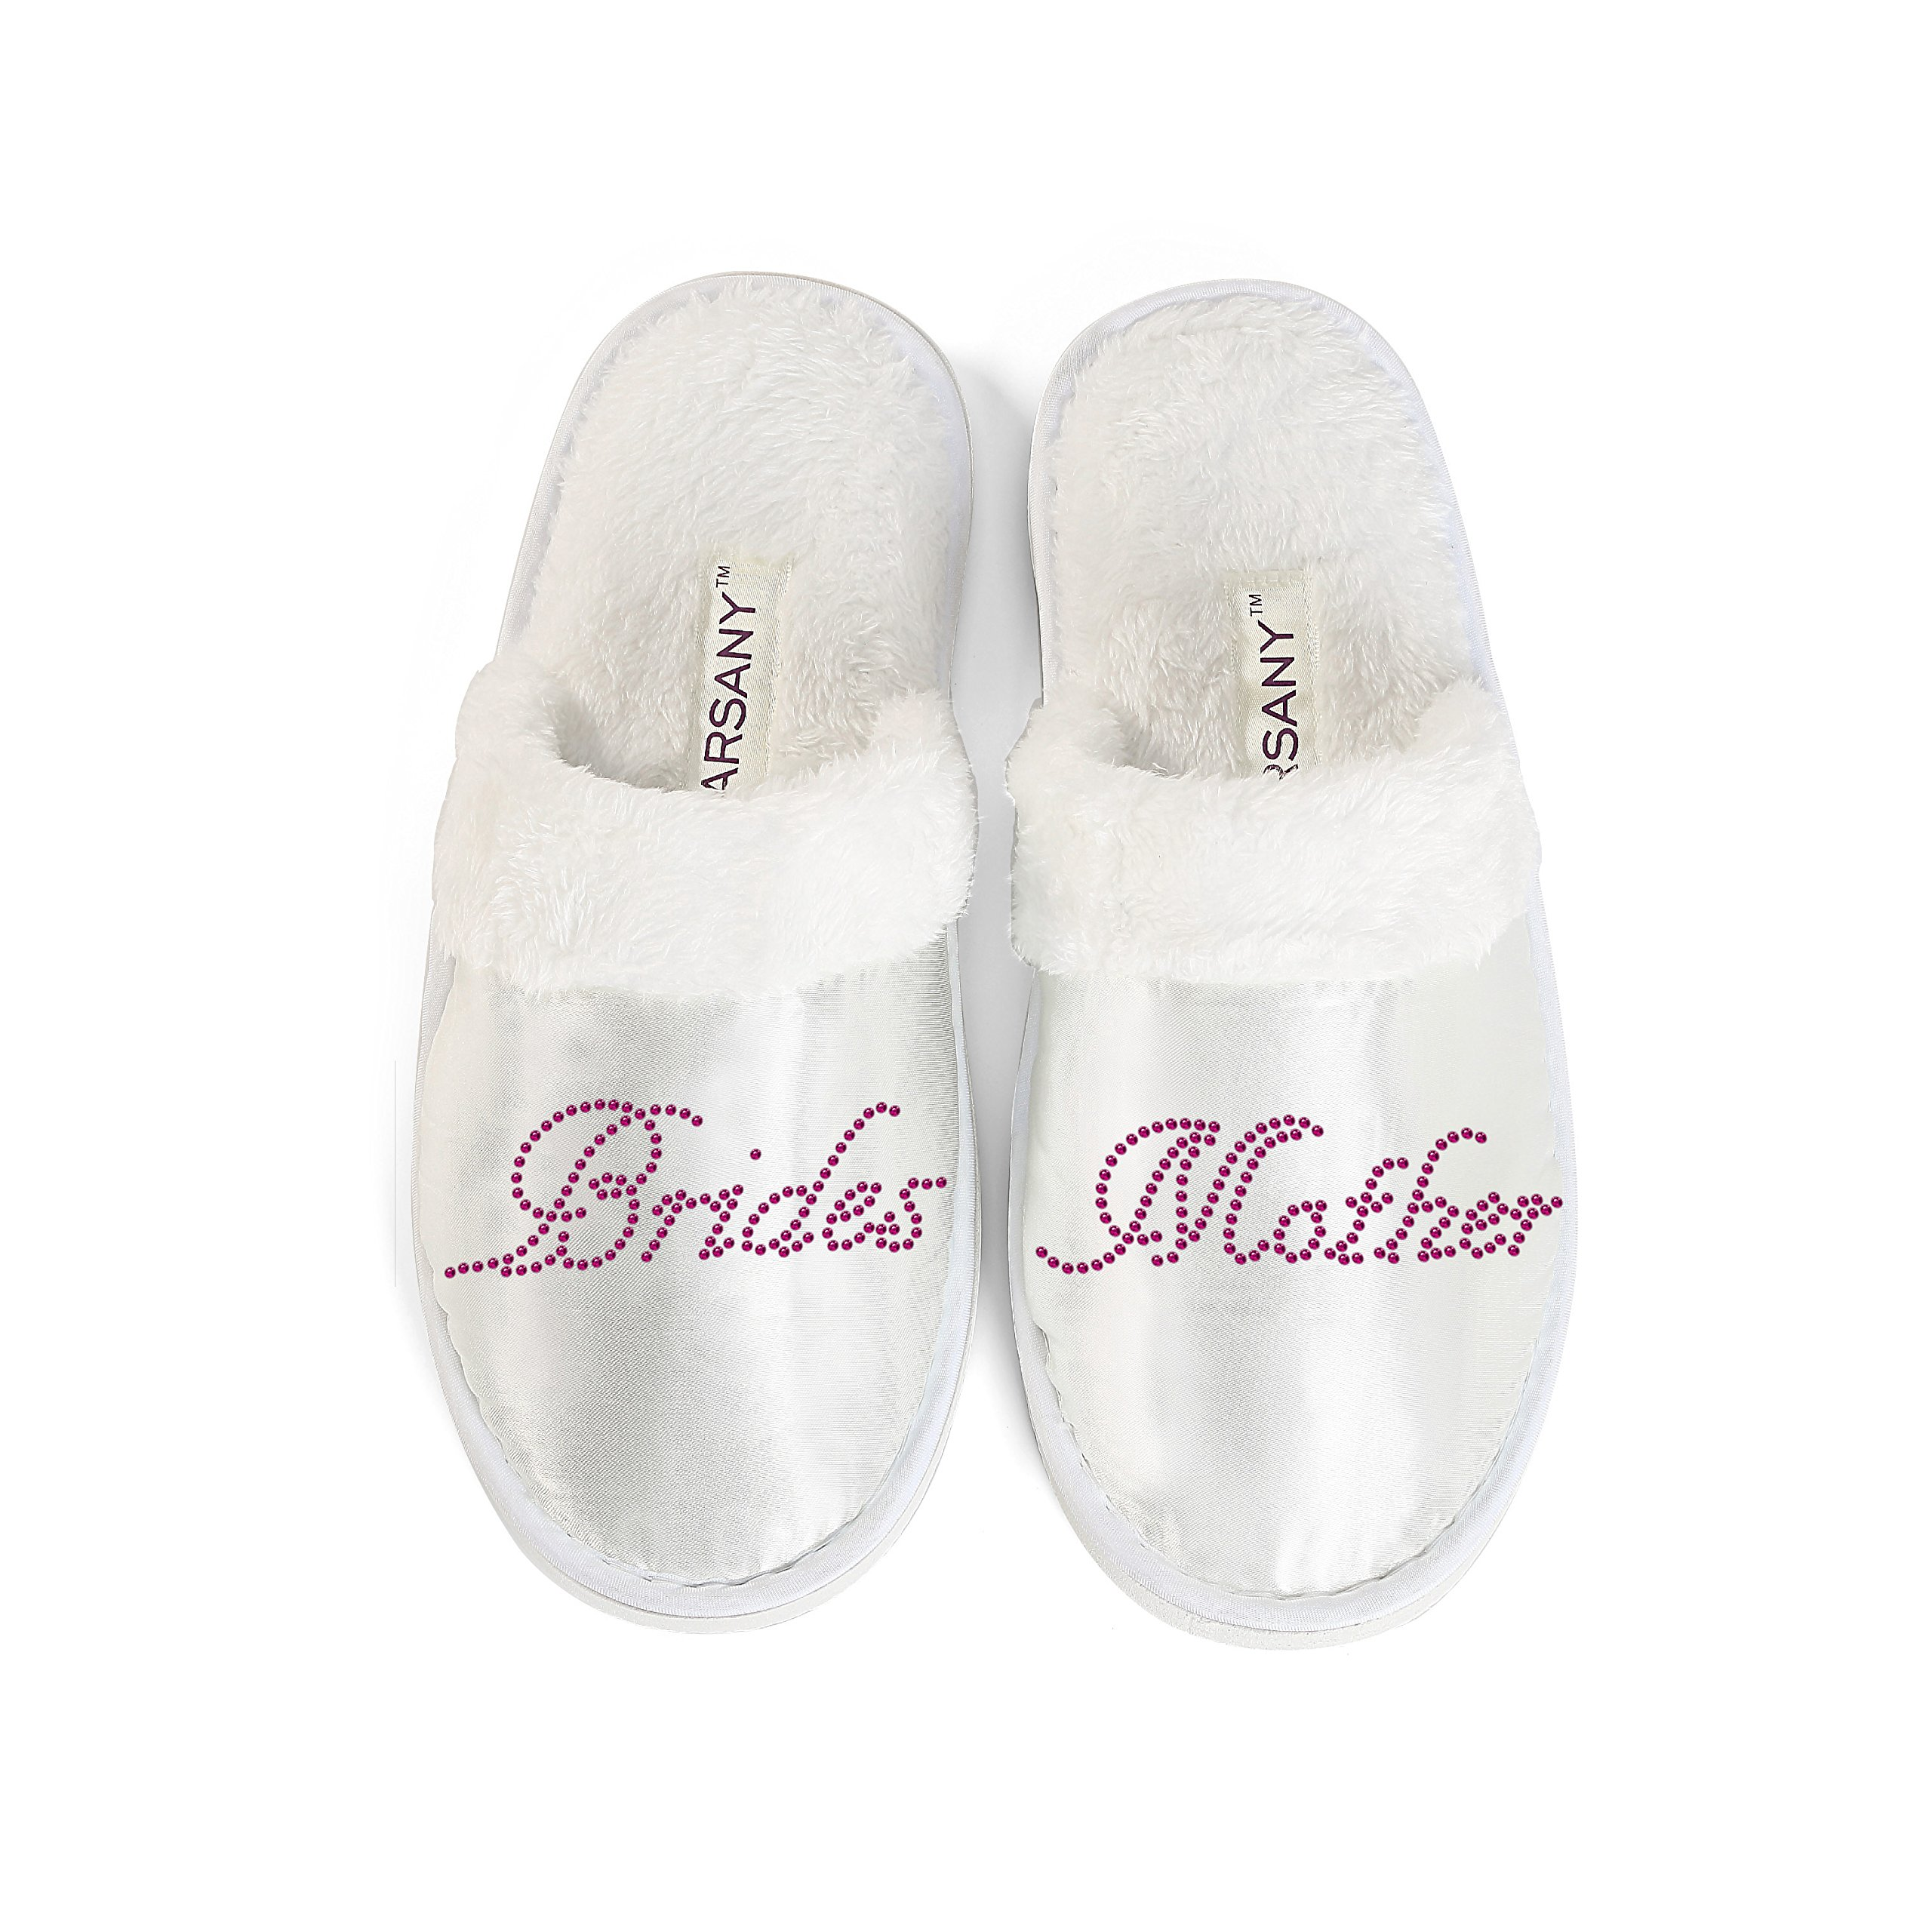 Hot Pink Brides Mother Spa Slippers Hen party Wedding Diamante rhinestone crystal hotel slippers